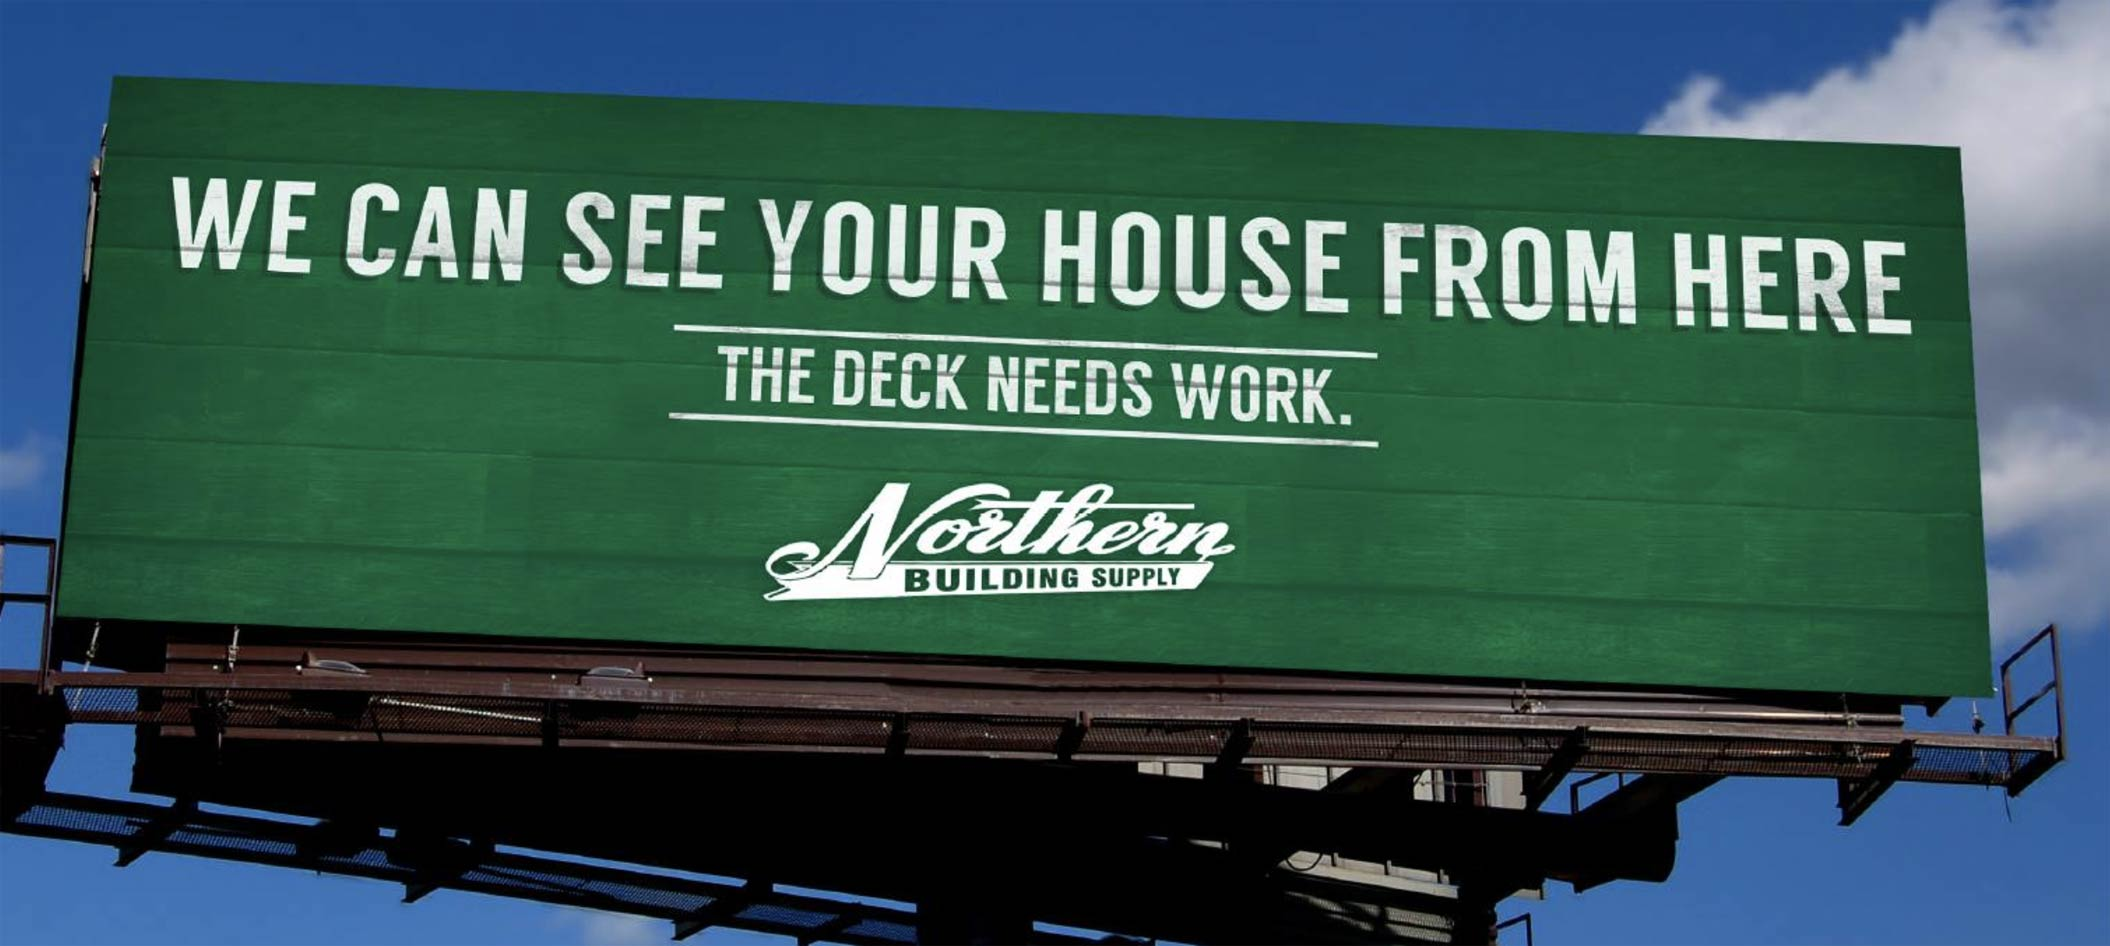 """Green billboard with text """"We can see your house from here."""""""